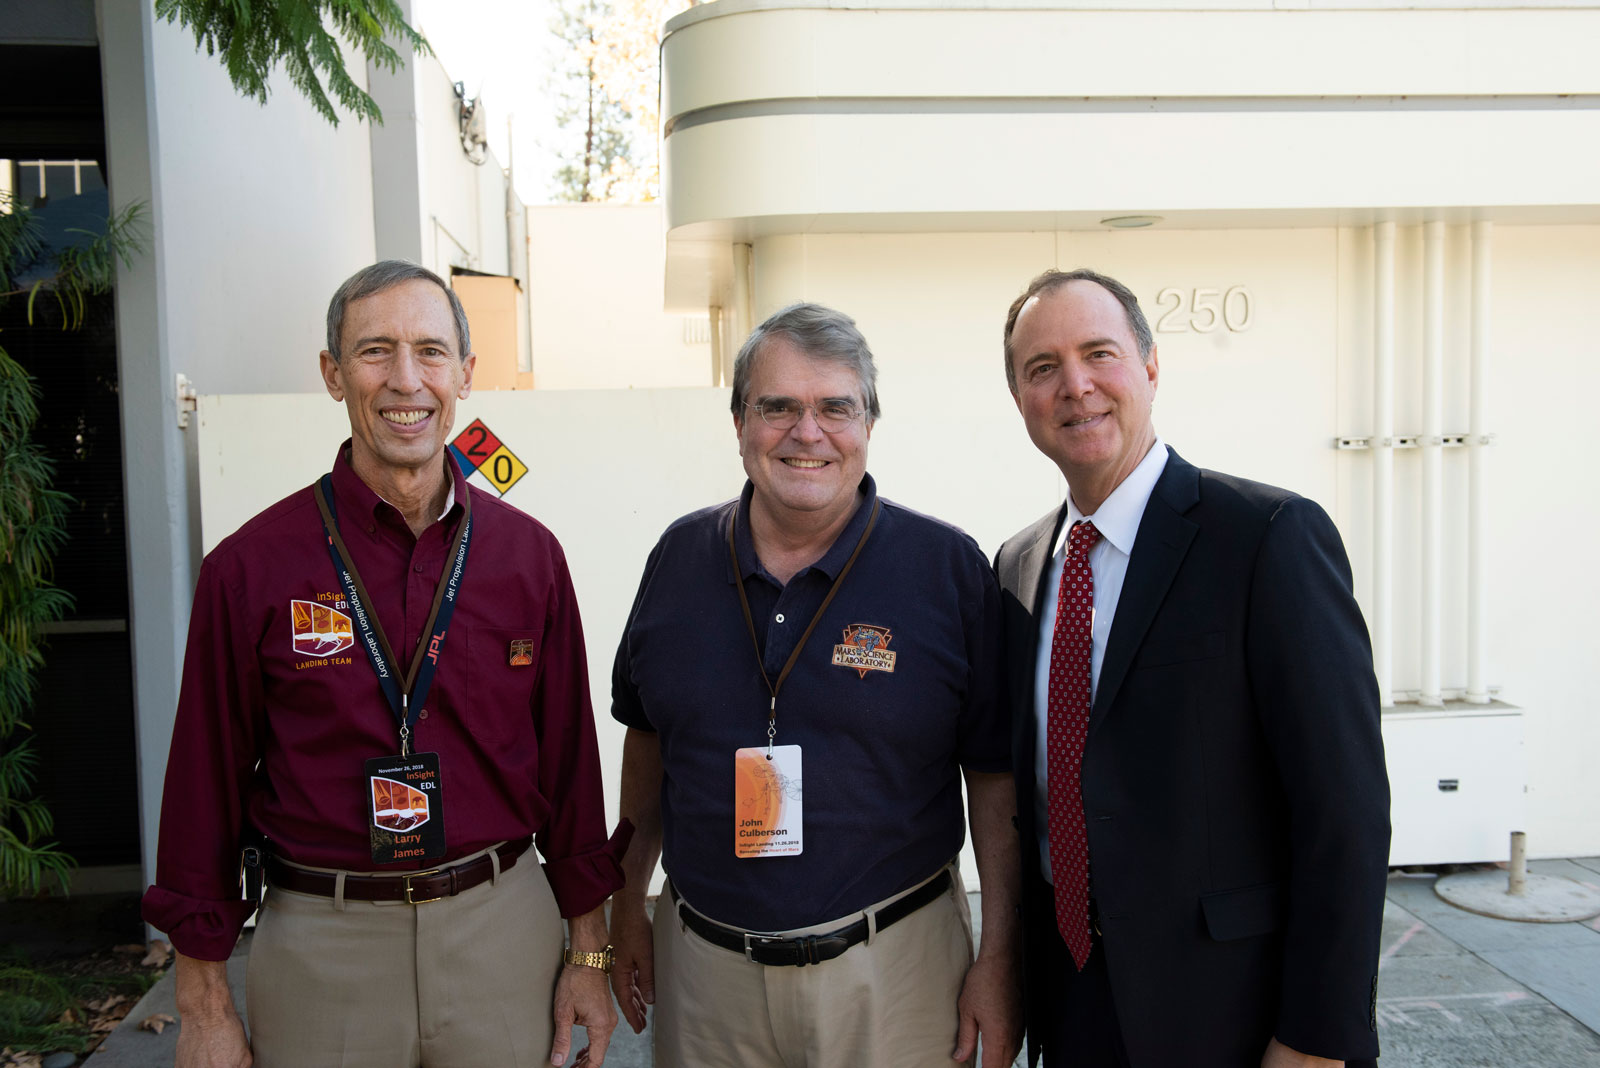 JPL Deputy Director Larry D. James, U.S. Rep. Culberson and U.S. Rep. Schiff at NASA's Jet Propulsion Laboratory for InSight's Mars landing, on Nov. 26, 2018.